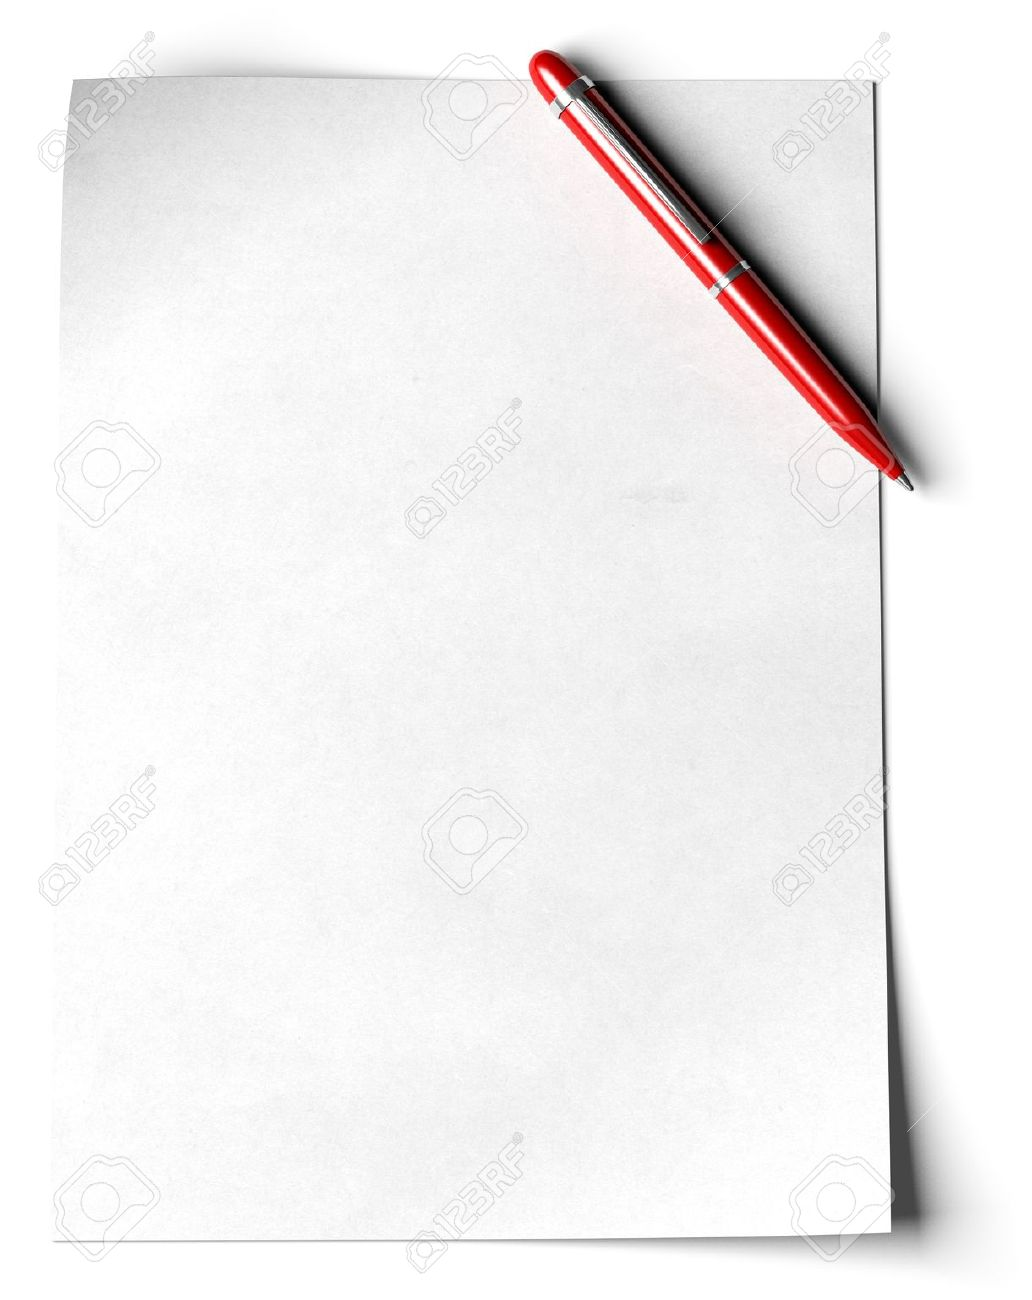 blank page with a red ball point pen in the angle of the page over white